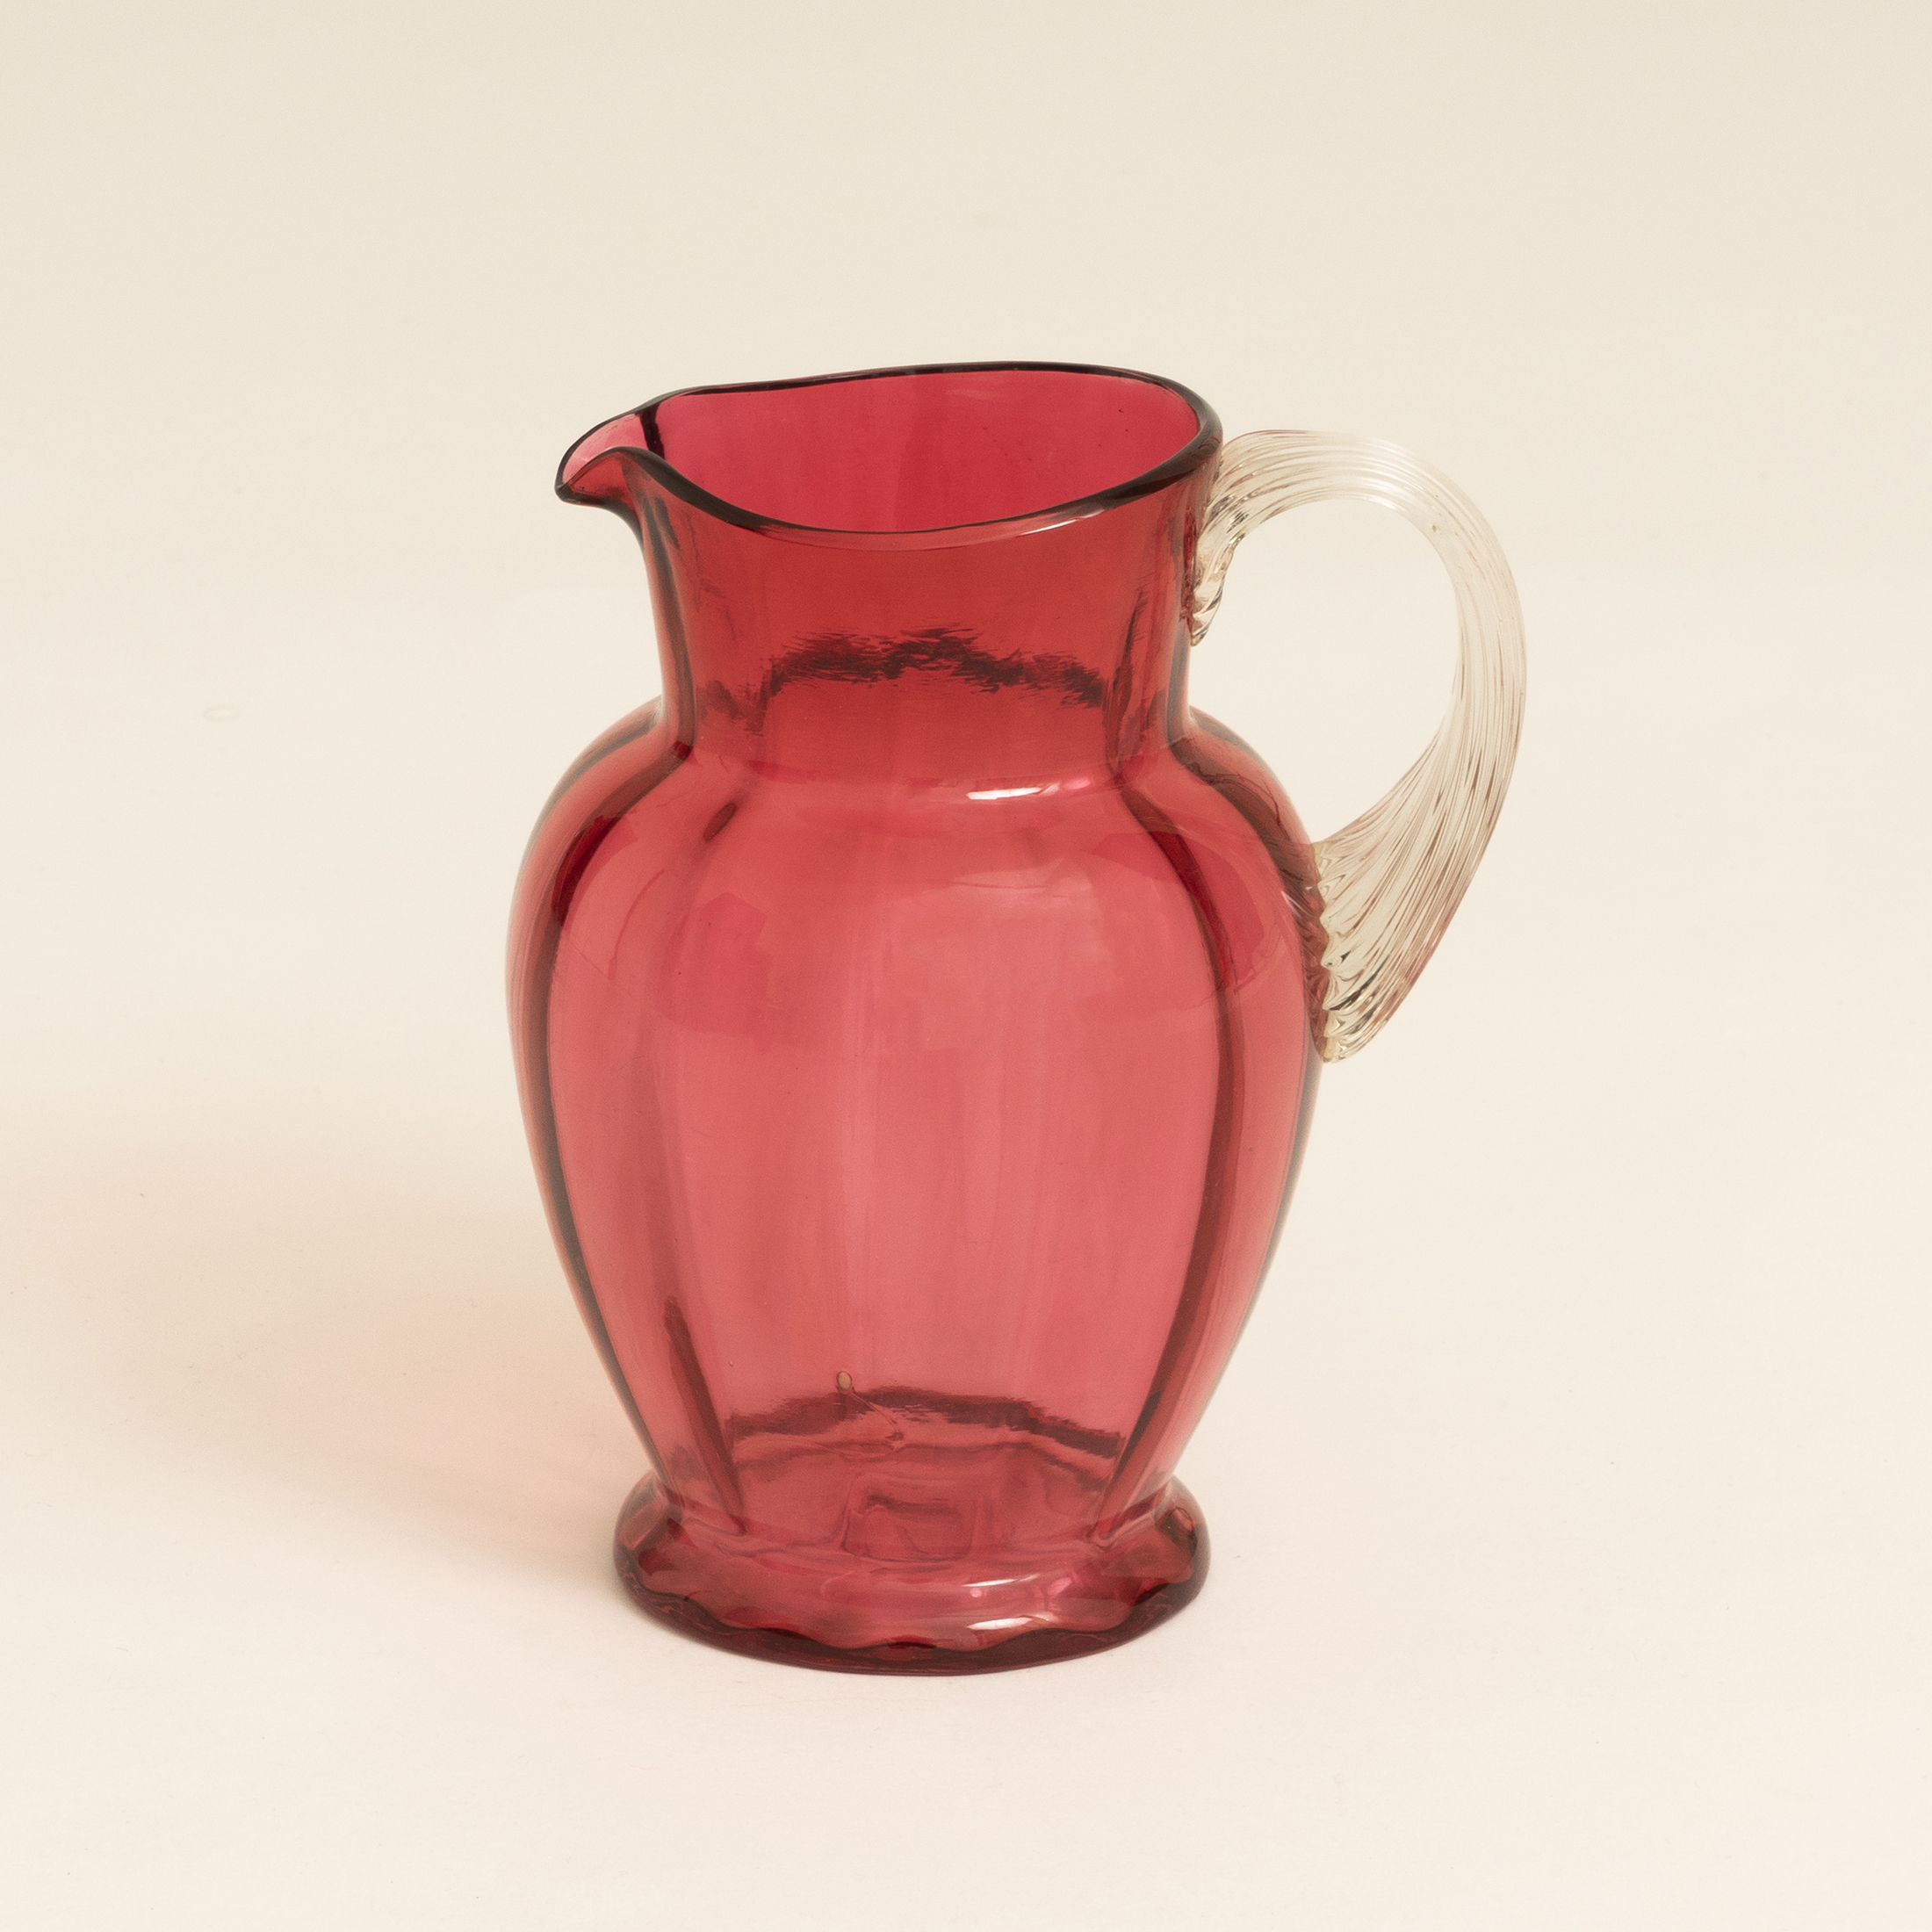 The image for Cranberry Jug 2 0983